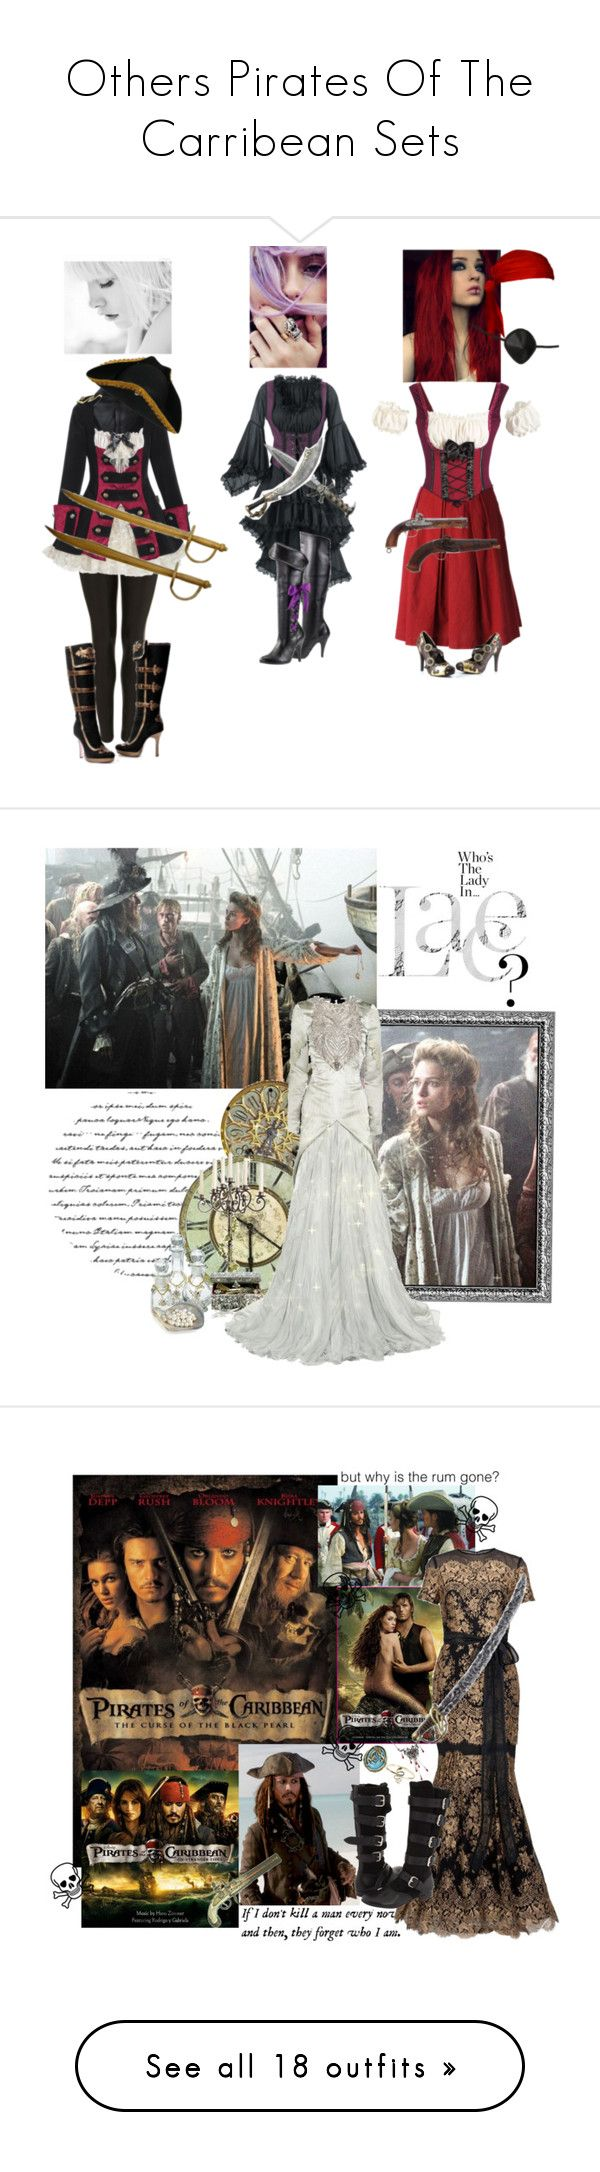 """""""Others Pirates Of The Carribean Sets"""" by medieval-style ❤ liked on Polyvore featuring Topshop, Erika Cavallini Semi-Couture, Black Pearl, WALL, French Country, Alexander McQueen, mcqueen, keira knightley, lizzy and dressing gown"""